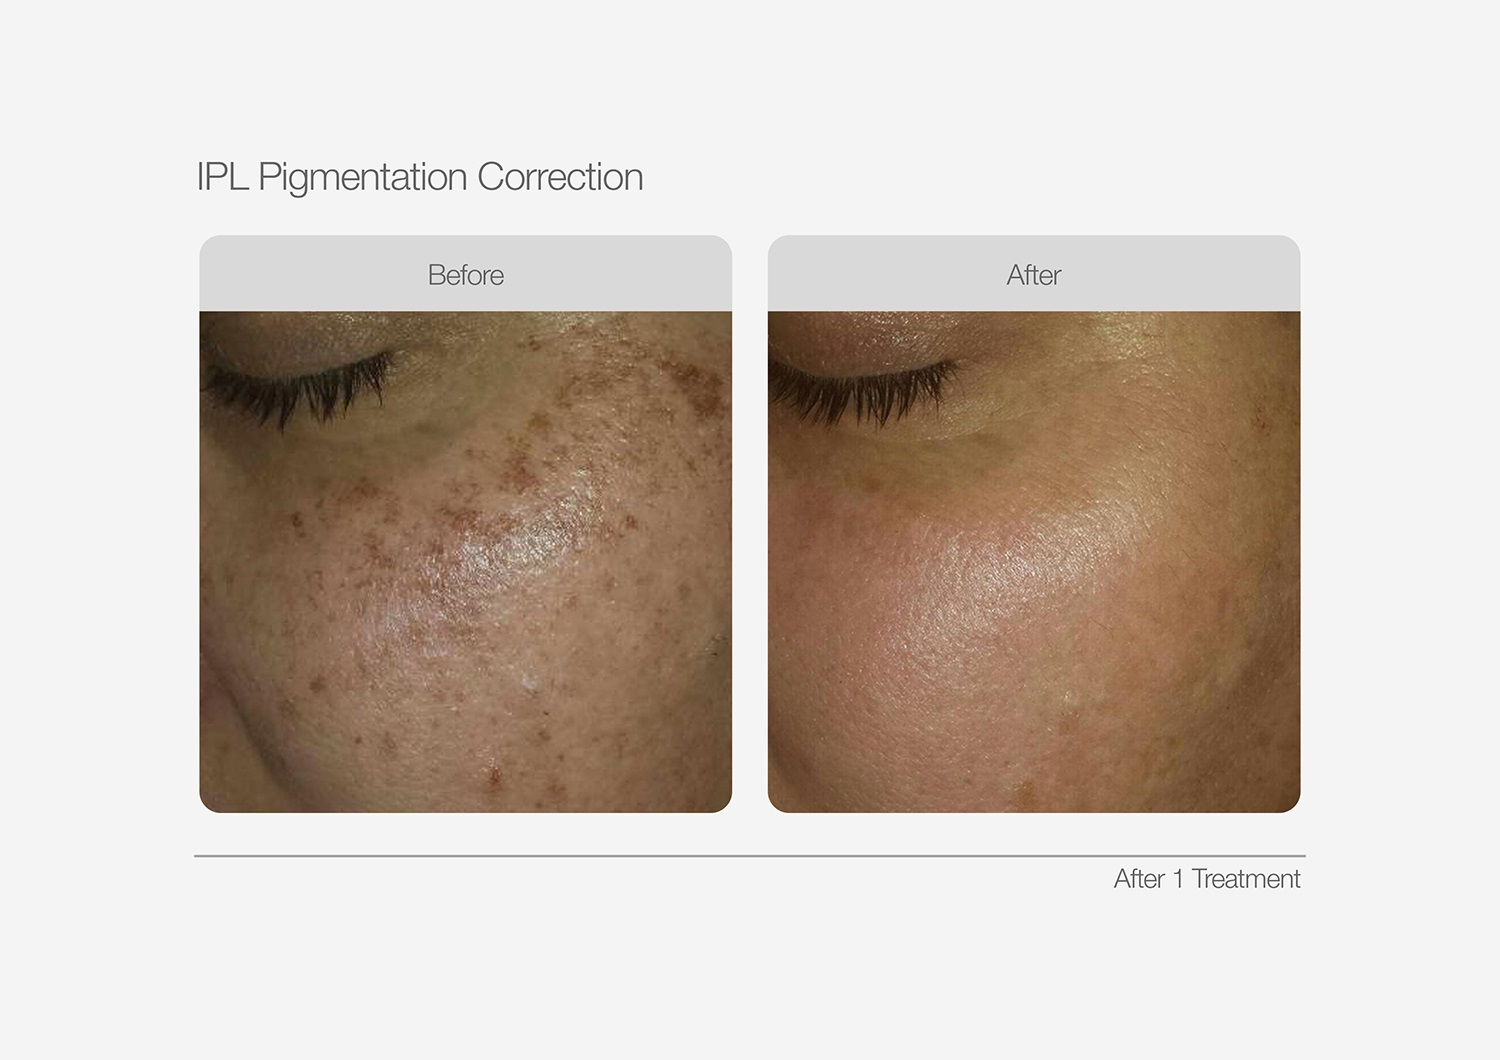 IPL-Pigmentation-Correction-Before-After-02